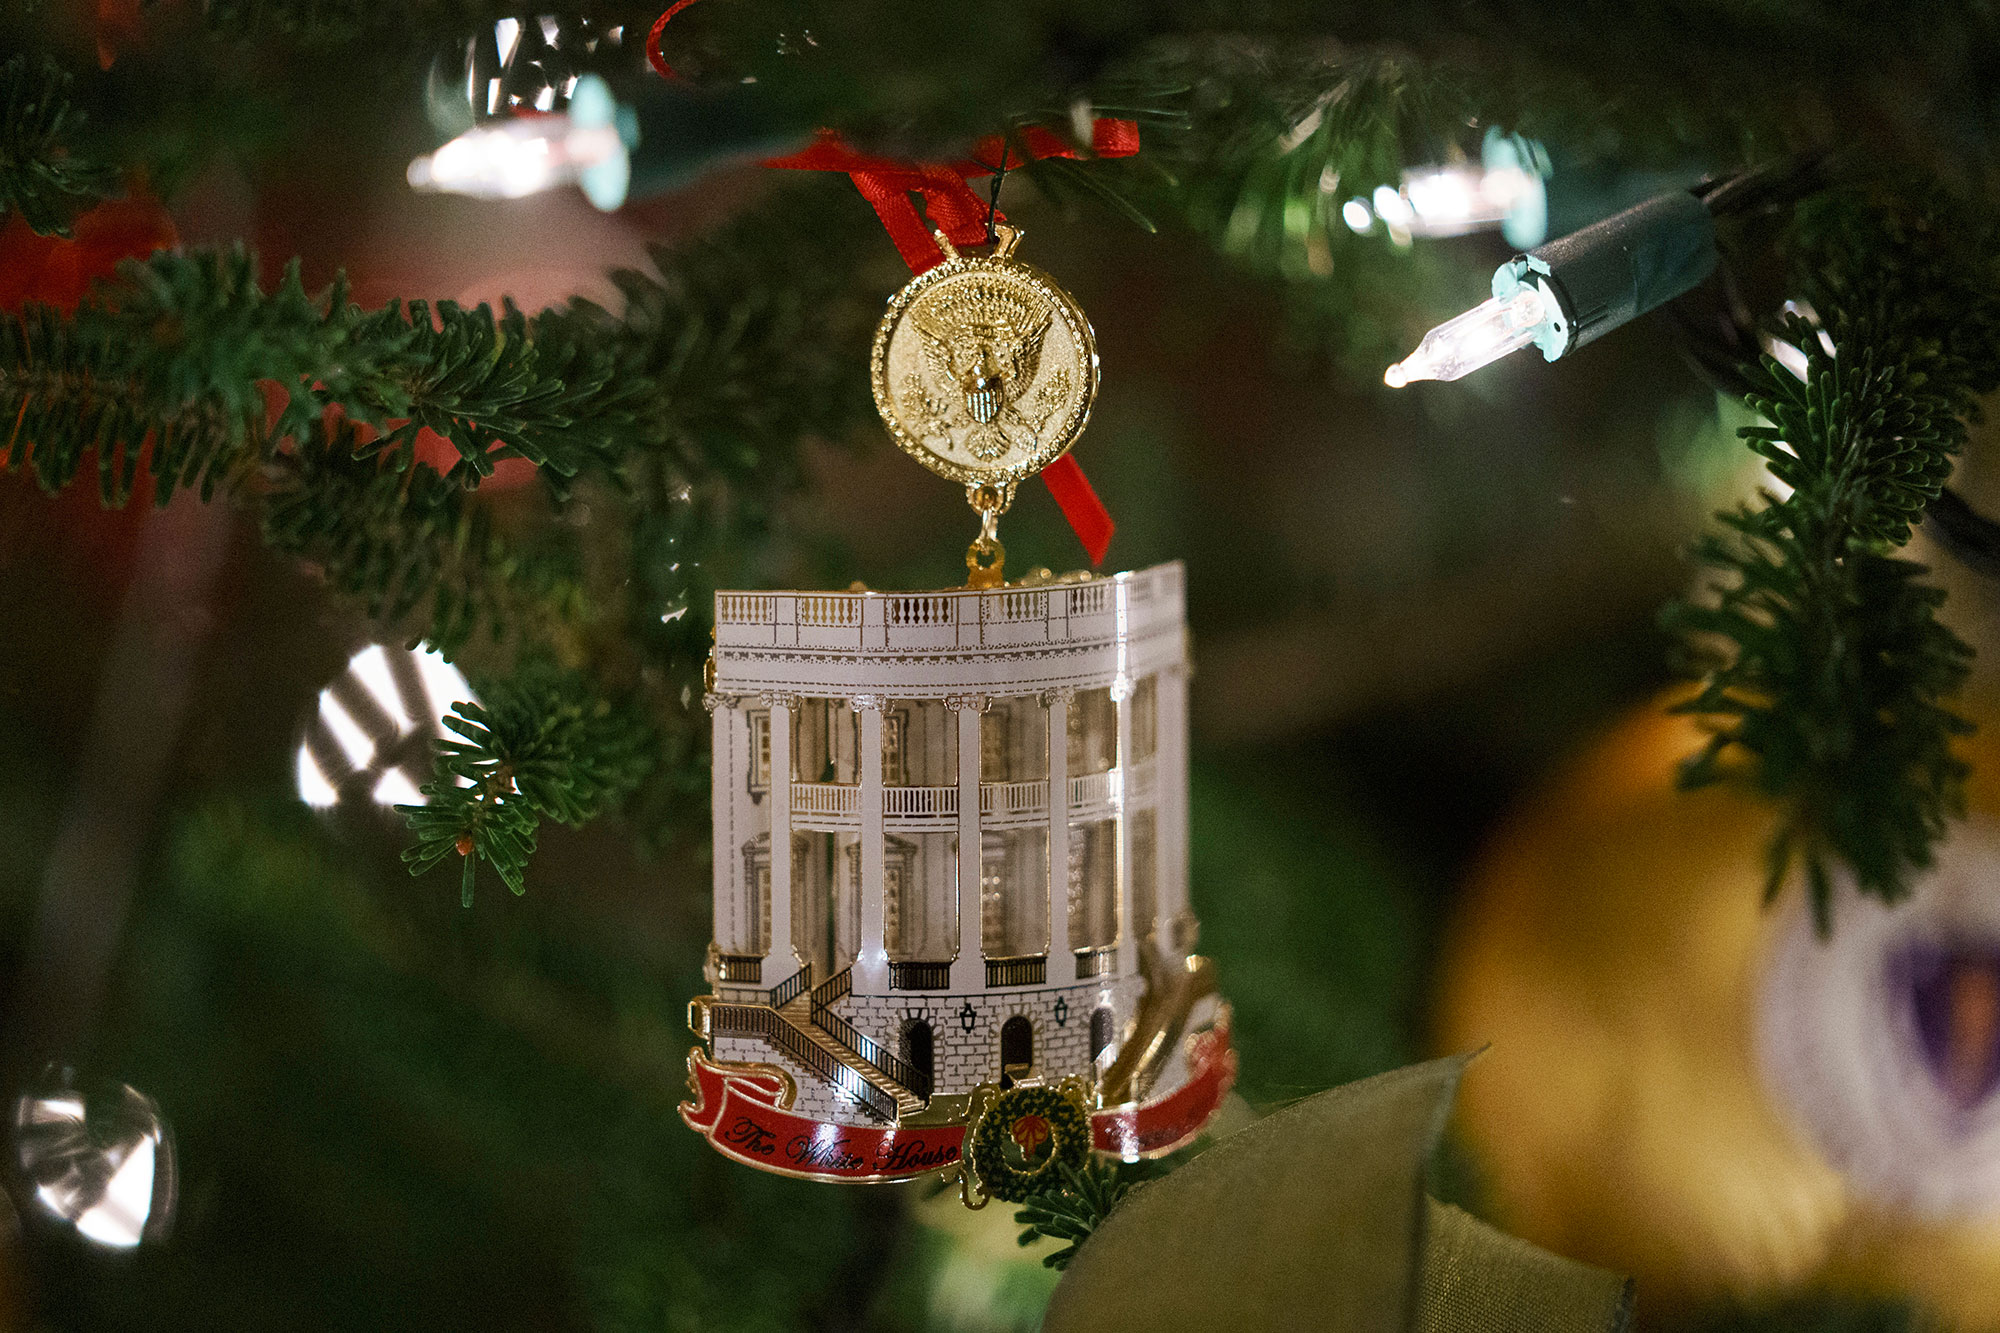 PHOTOS: White House Christmas decor 'shines with the ...